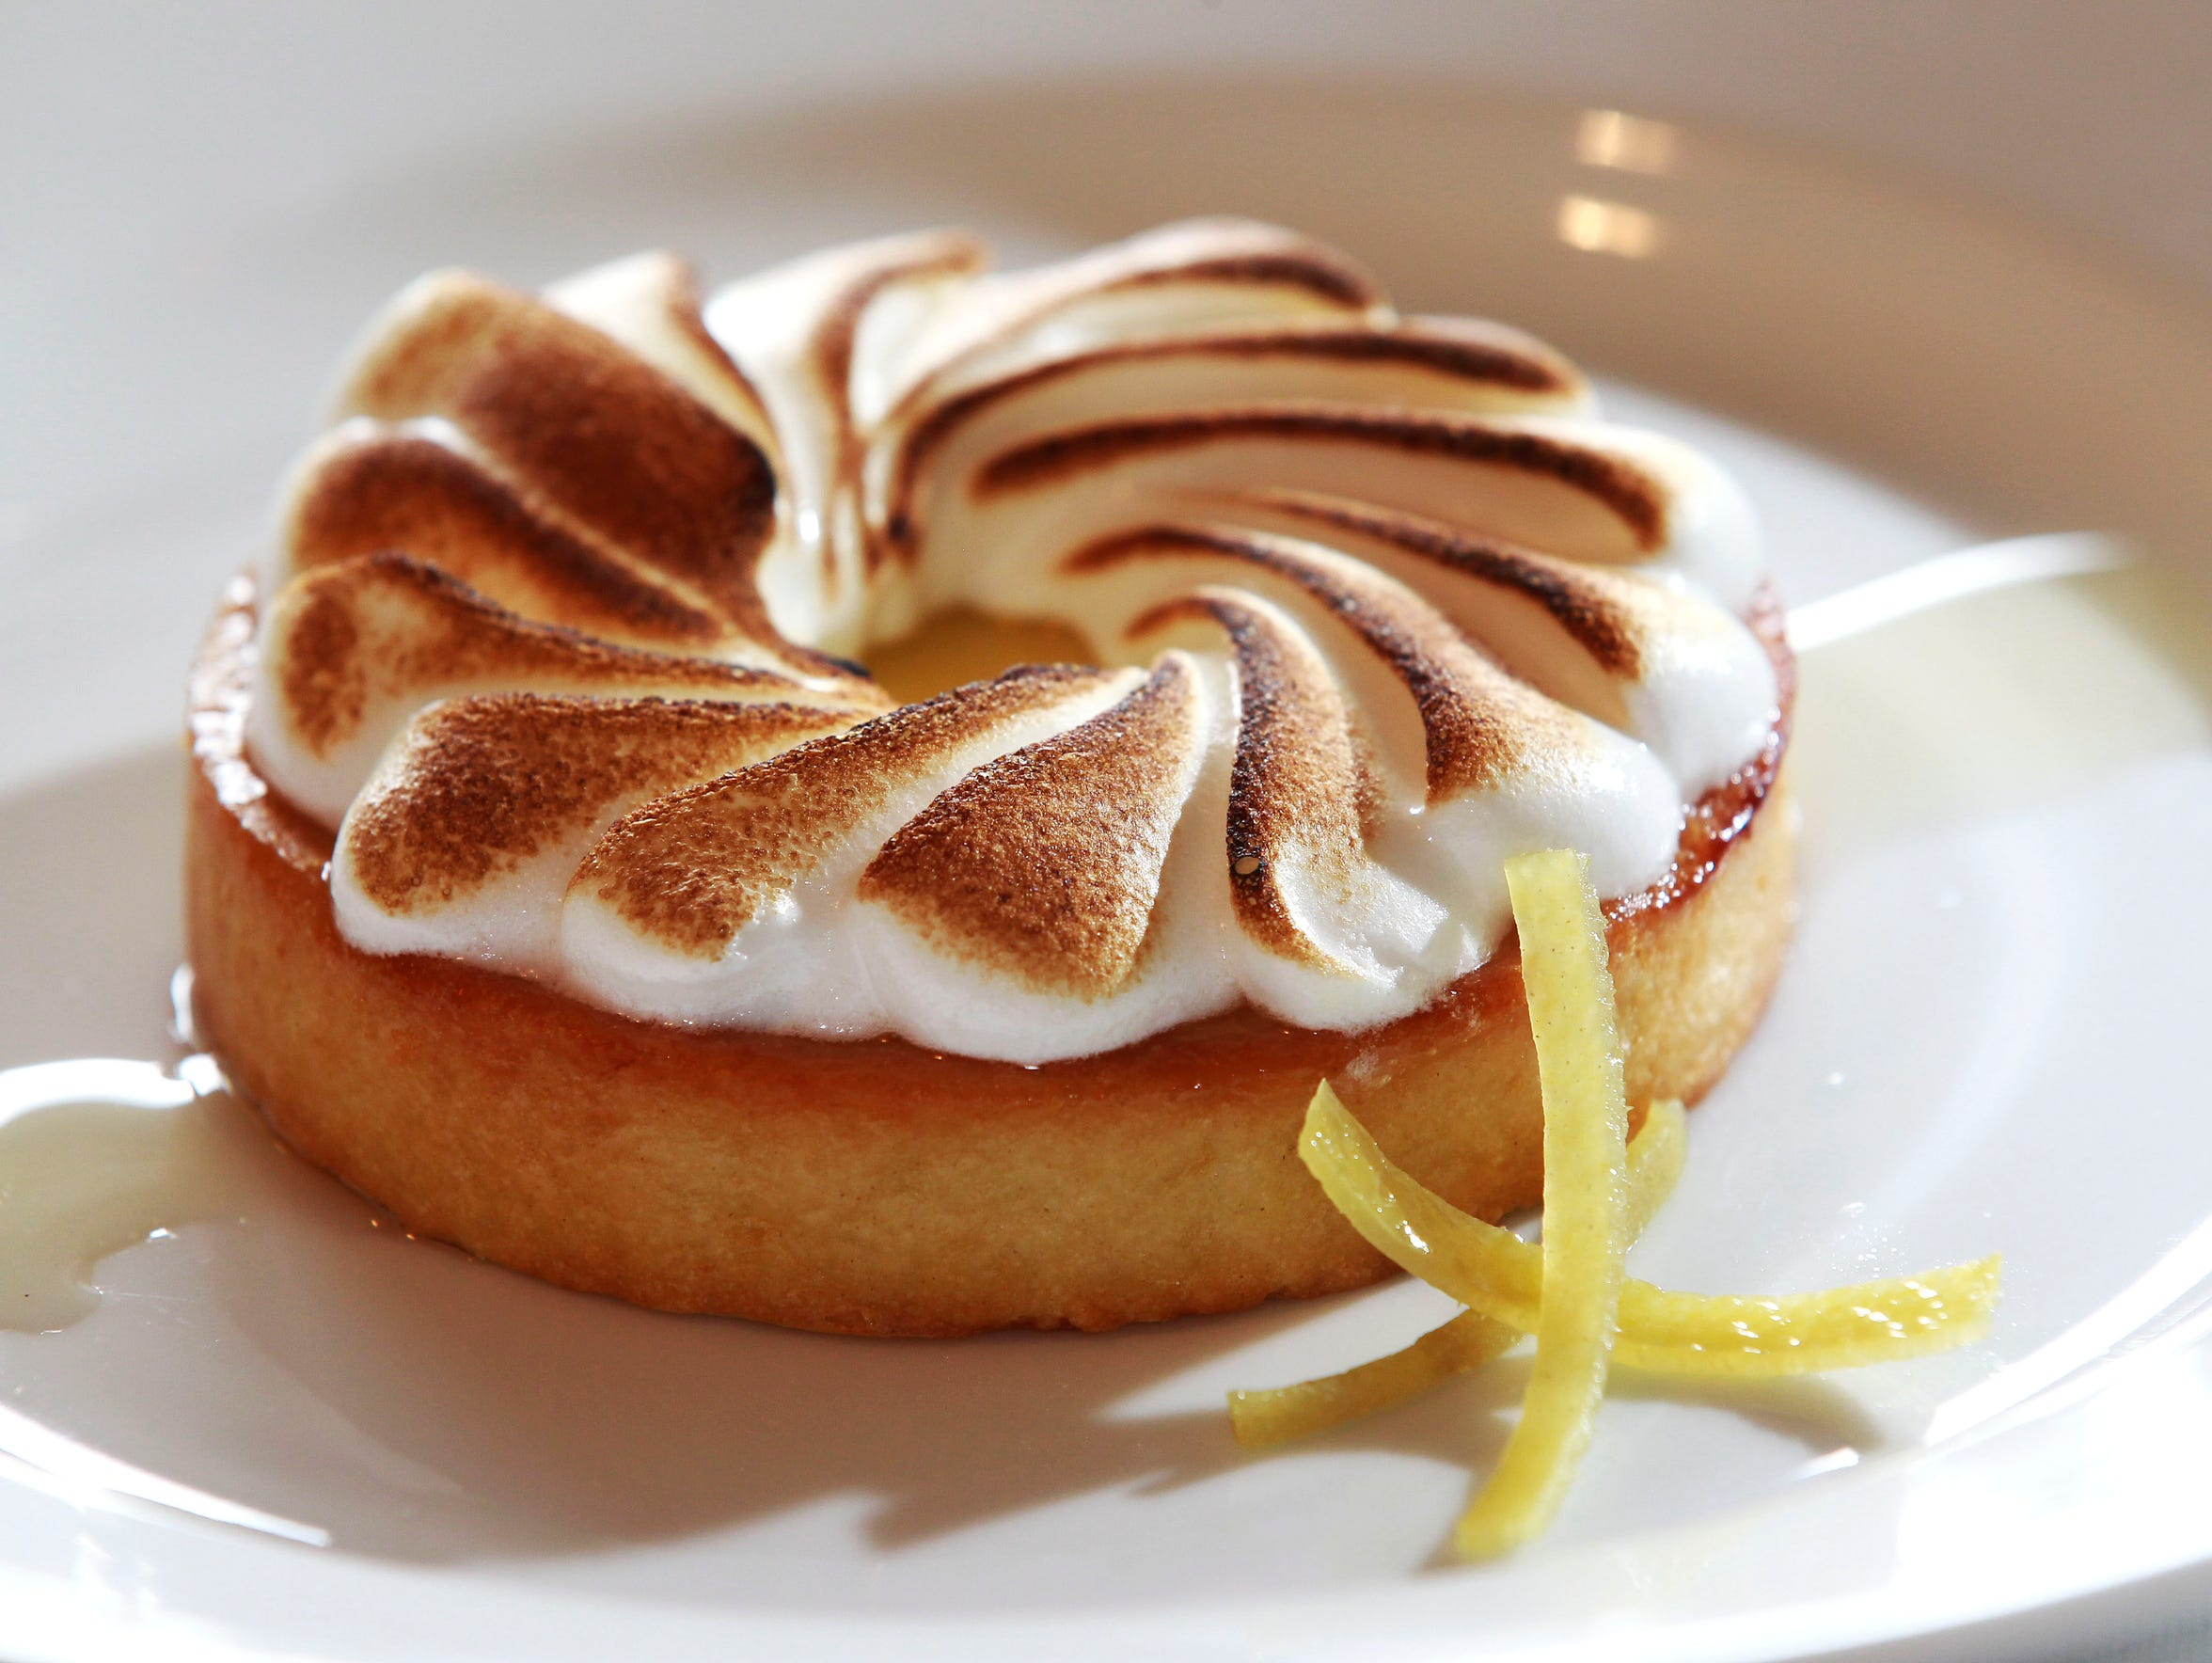 Tarte au Citron from the Lake Park Bistro at 3133 E.